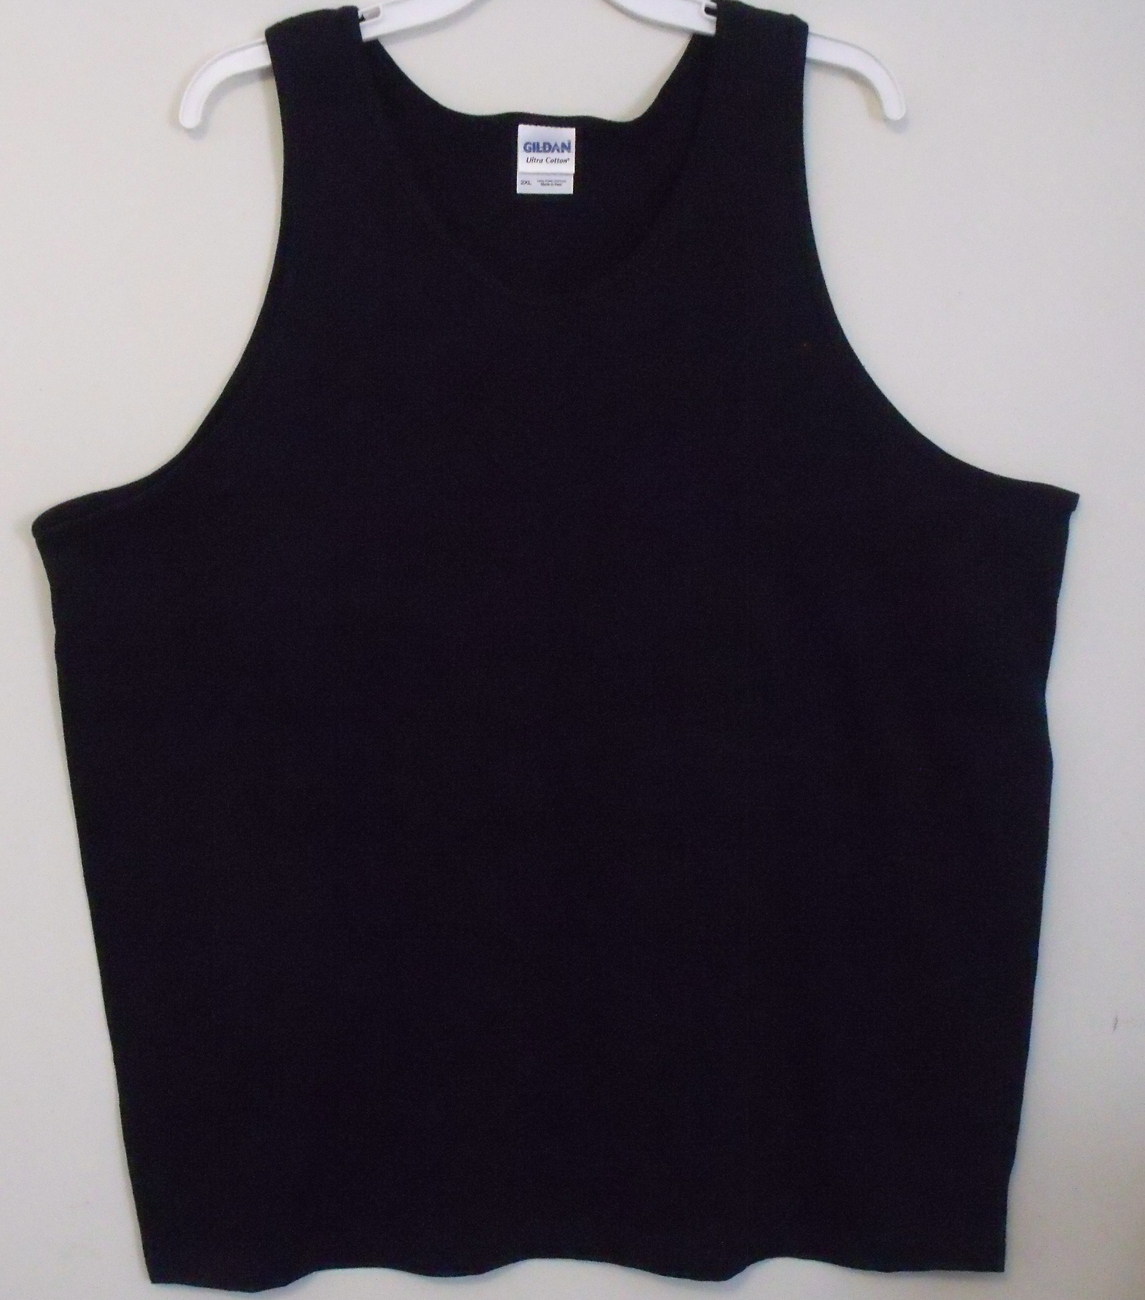 Mens gildan black tank top front